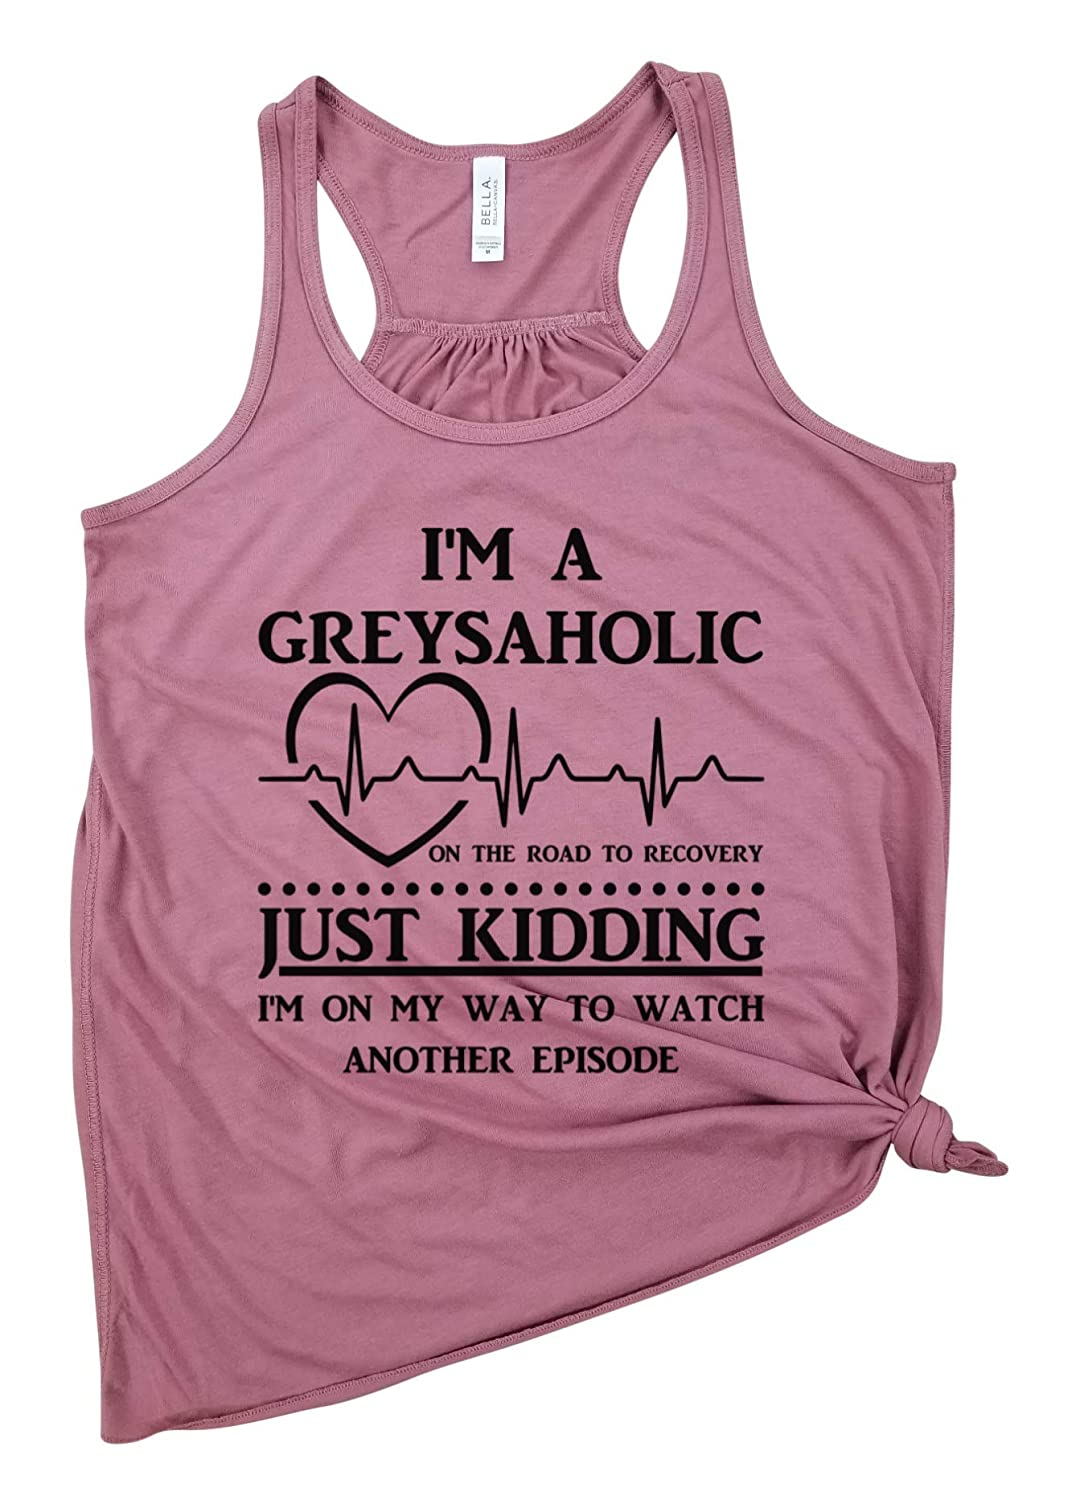 I'm a greysaholic - inspired 4 years warranty by show Grey's Anatomy Time sale and dark tv